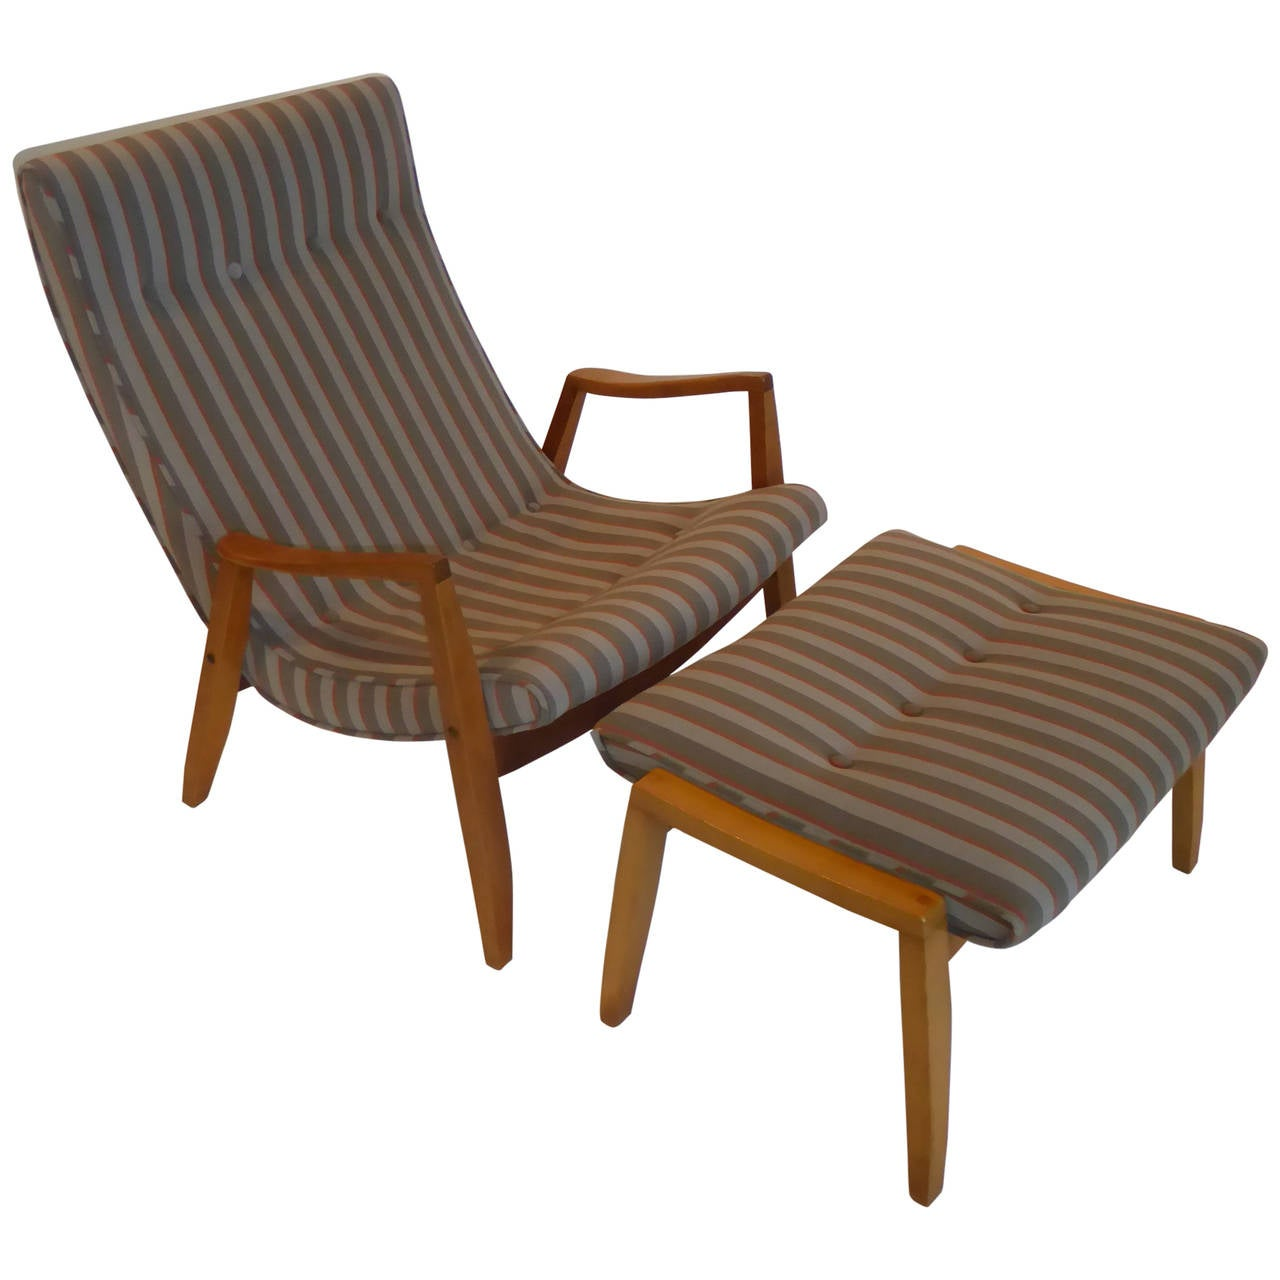 1950s Milo Baughman Scoop Lounge Chair And Ottoman 1